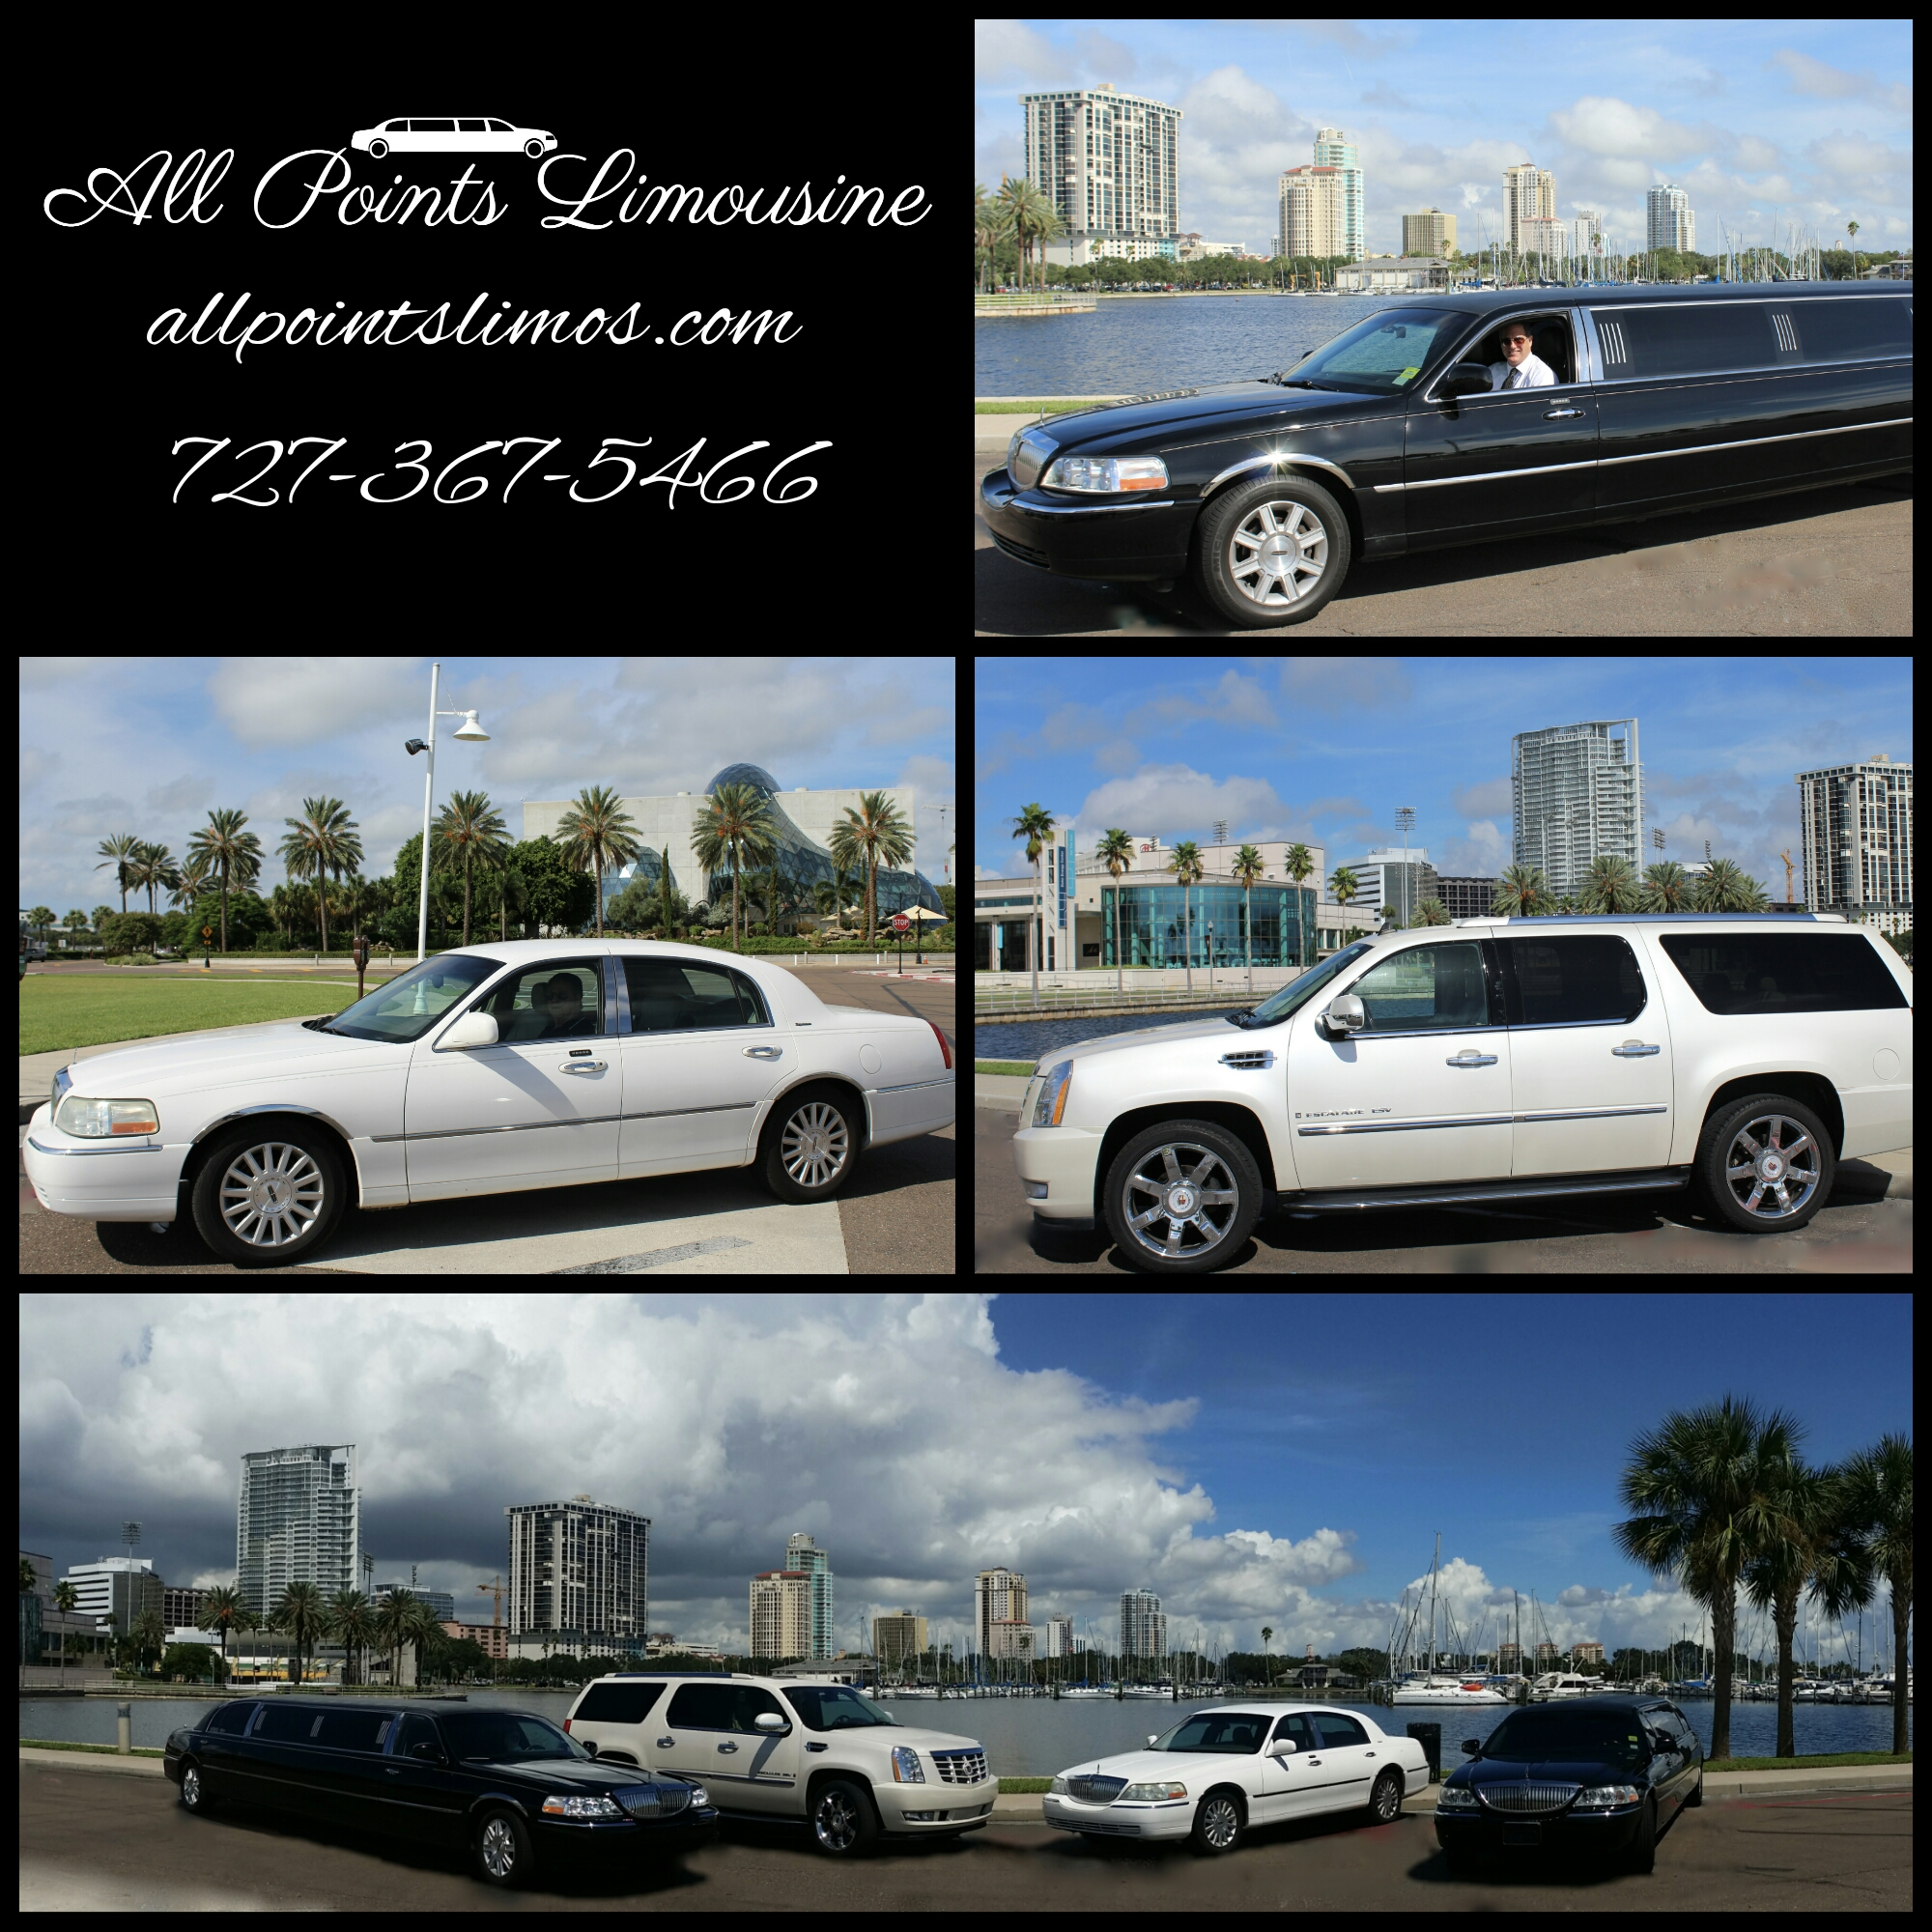 For American Coach Limousine we currently have 0 coupons and 0 deals. Our users can save with our coupons on average about $ Todays best offer is. If you can't find a coupon or a deal for you product then sign up for alerts and you will get updates on .